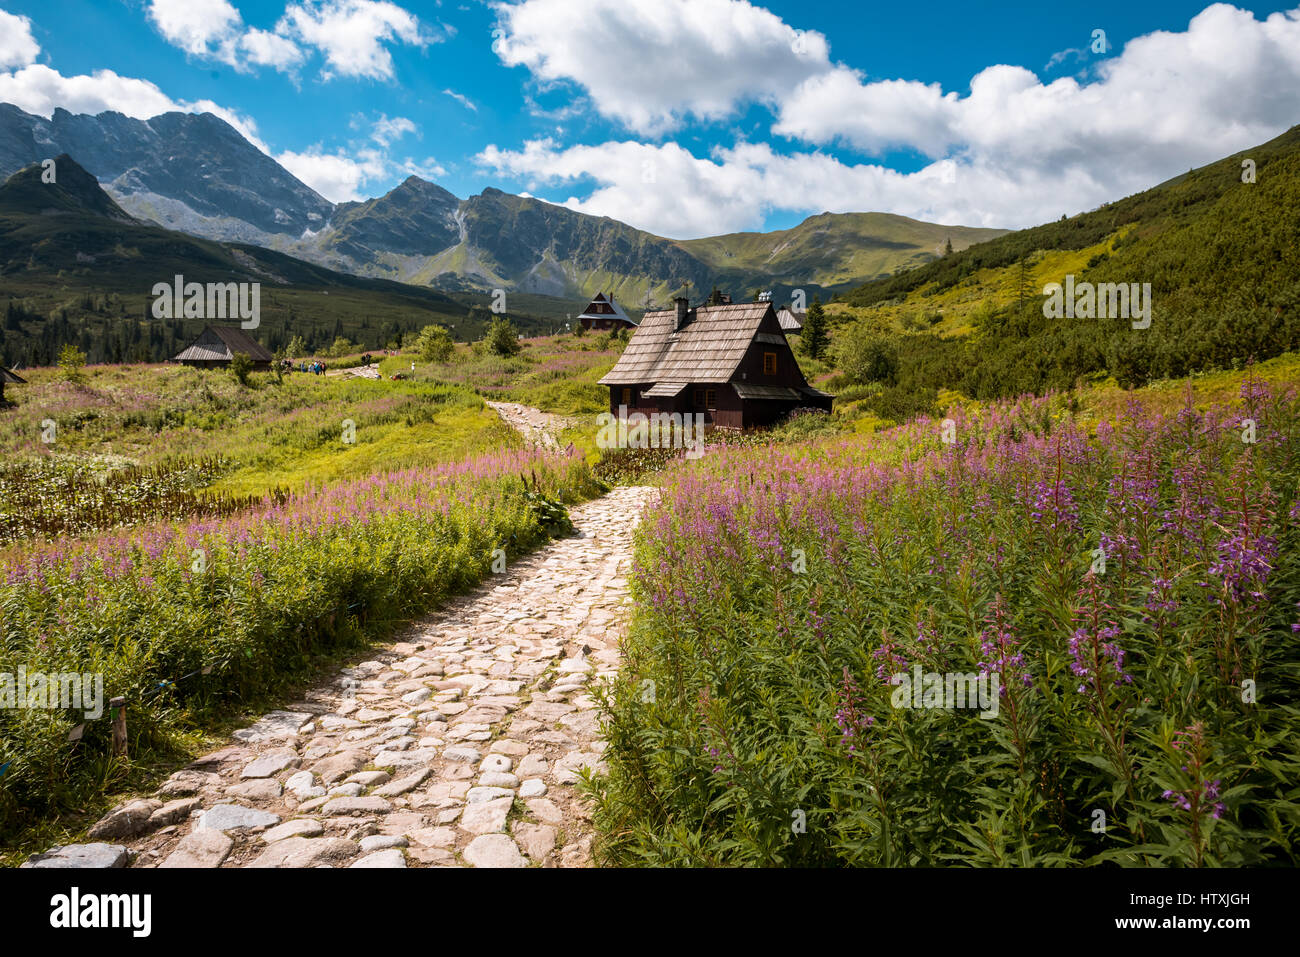 Summer View To Hala Gasienicowa In Valley, Tatra Mountains